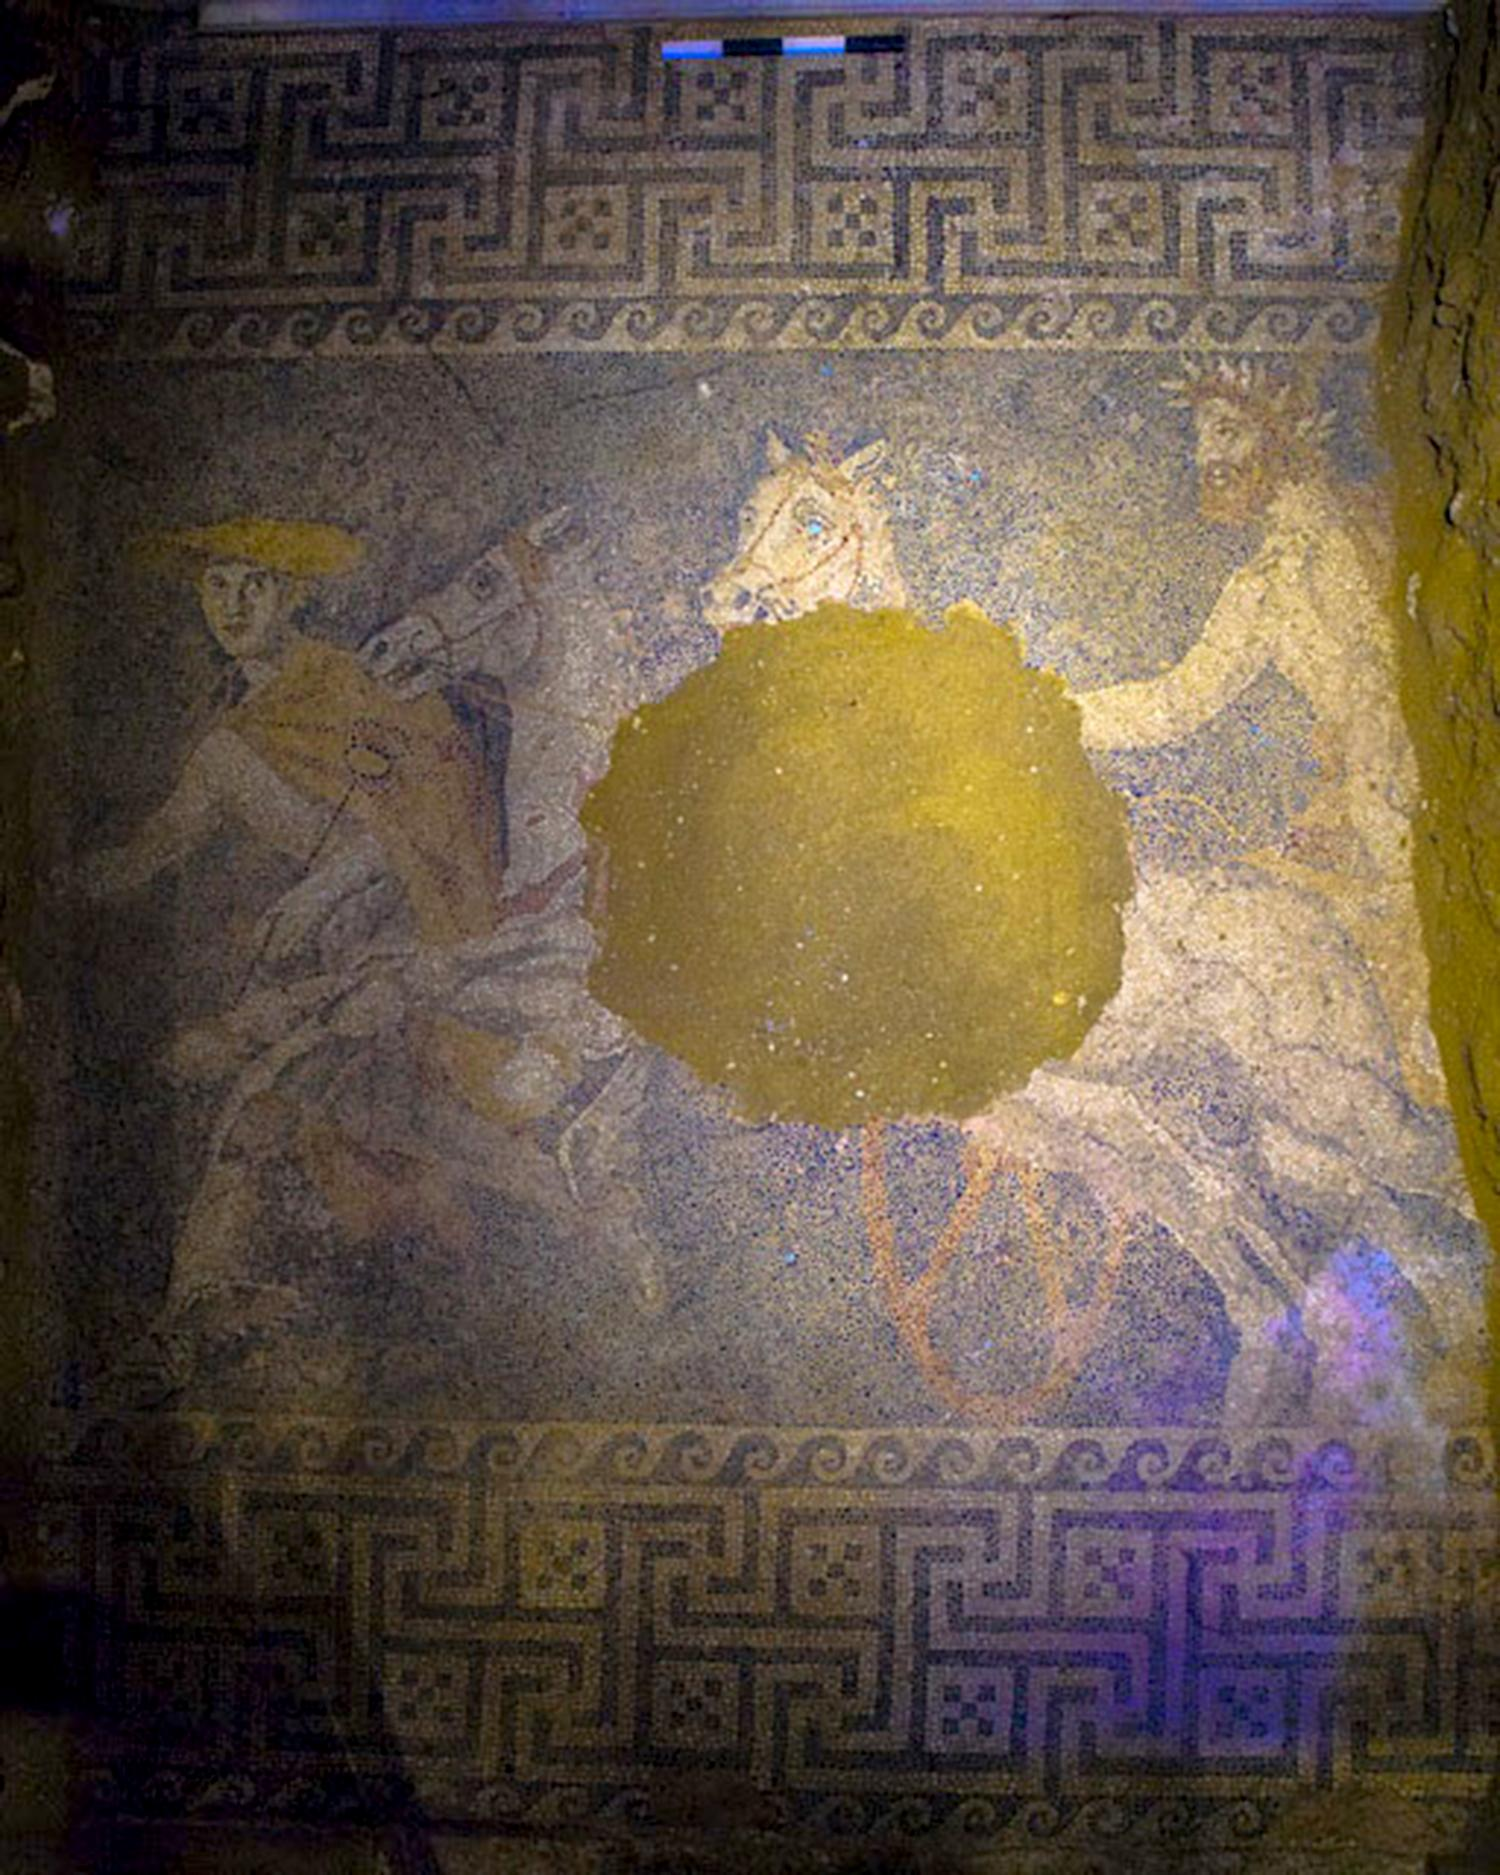 Blue mosaic floor of the Greek god Hermes leading a chariot bearing an unknown man